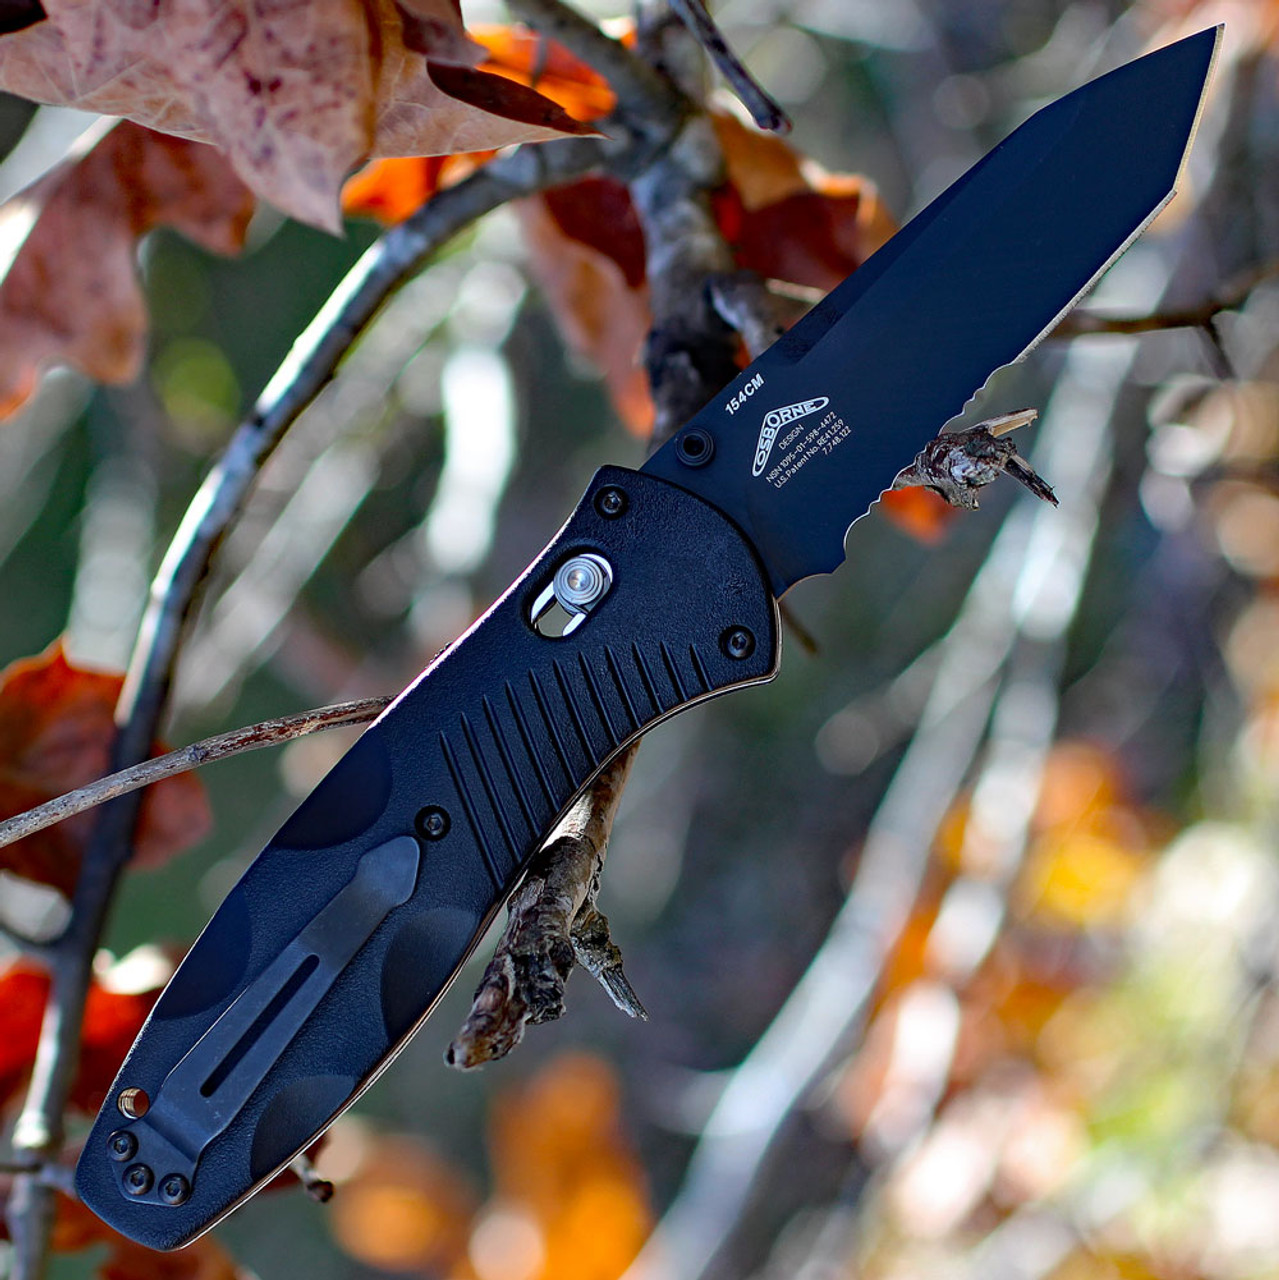 Benchmade Barrage 583SBK, 3.6 in. 154CM Stainless Blade, Assisted Opening, Black Combo Edge